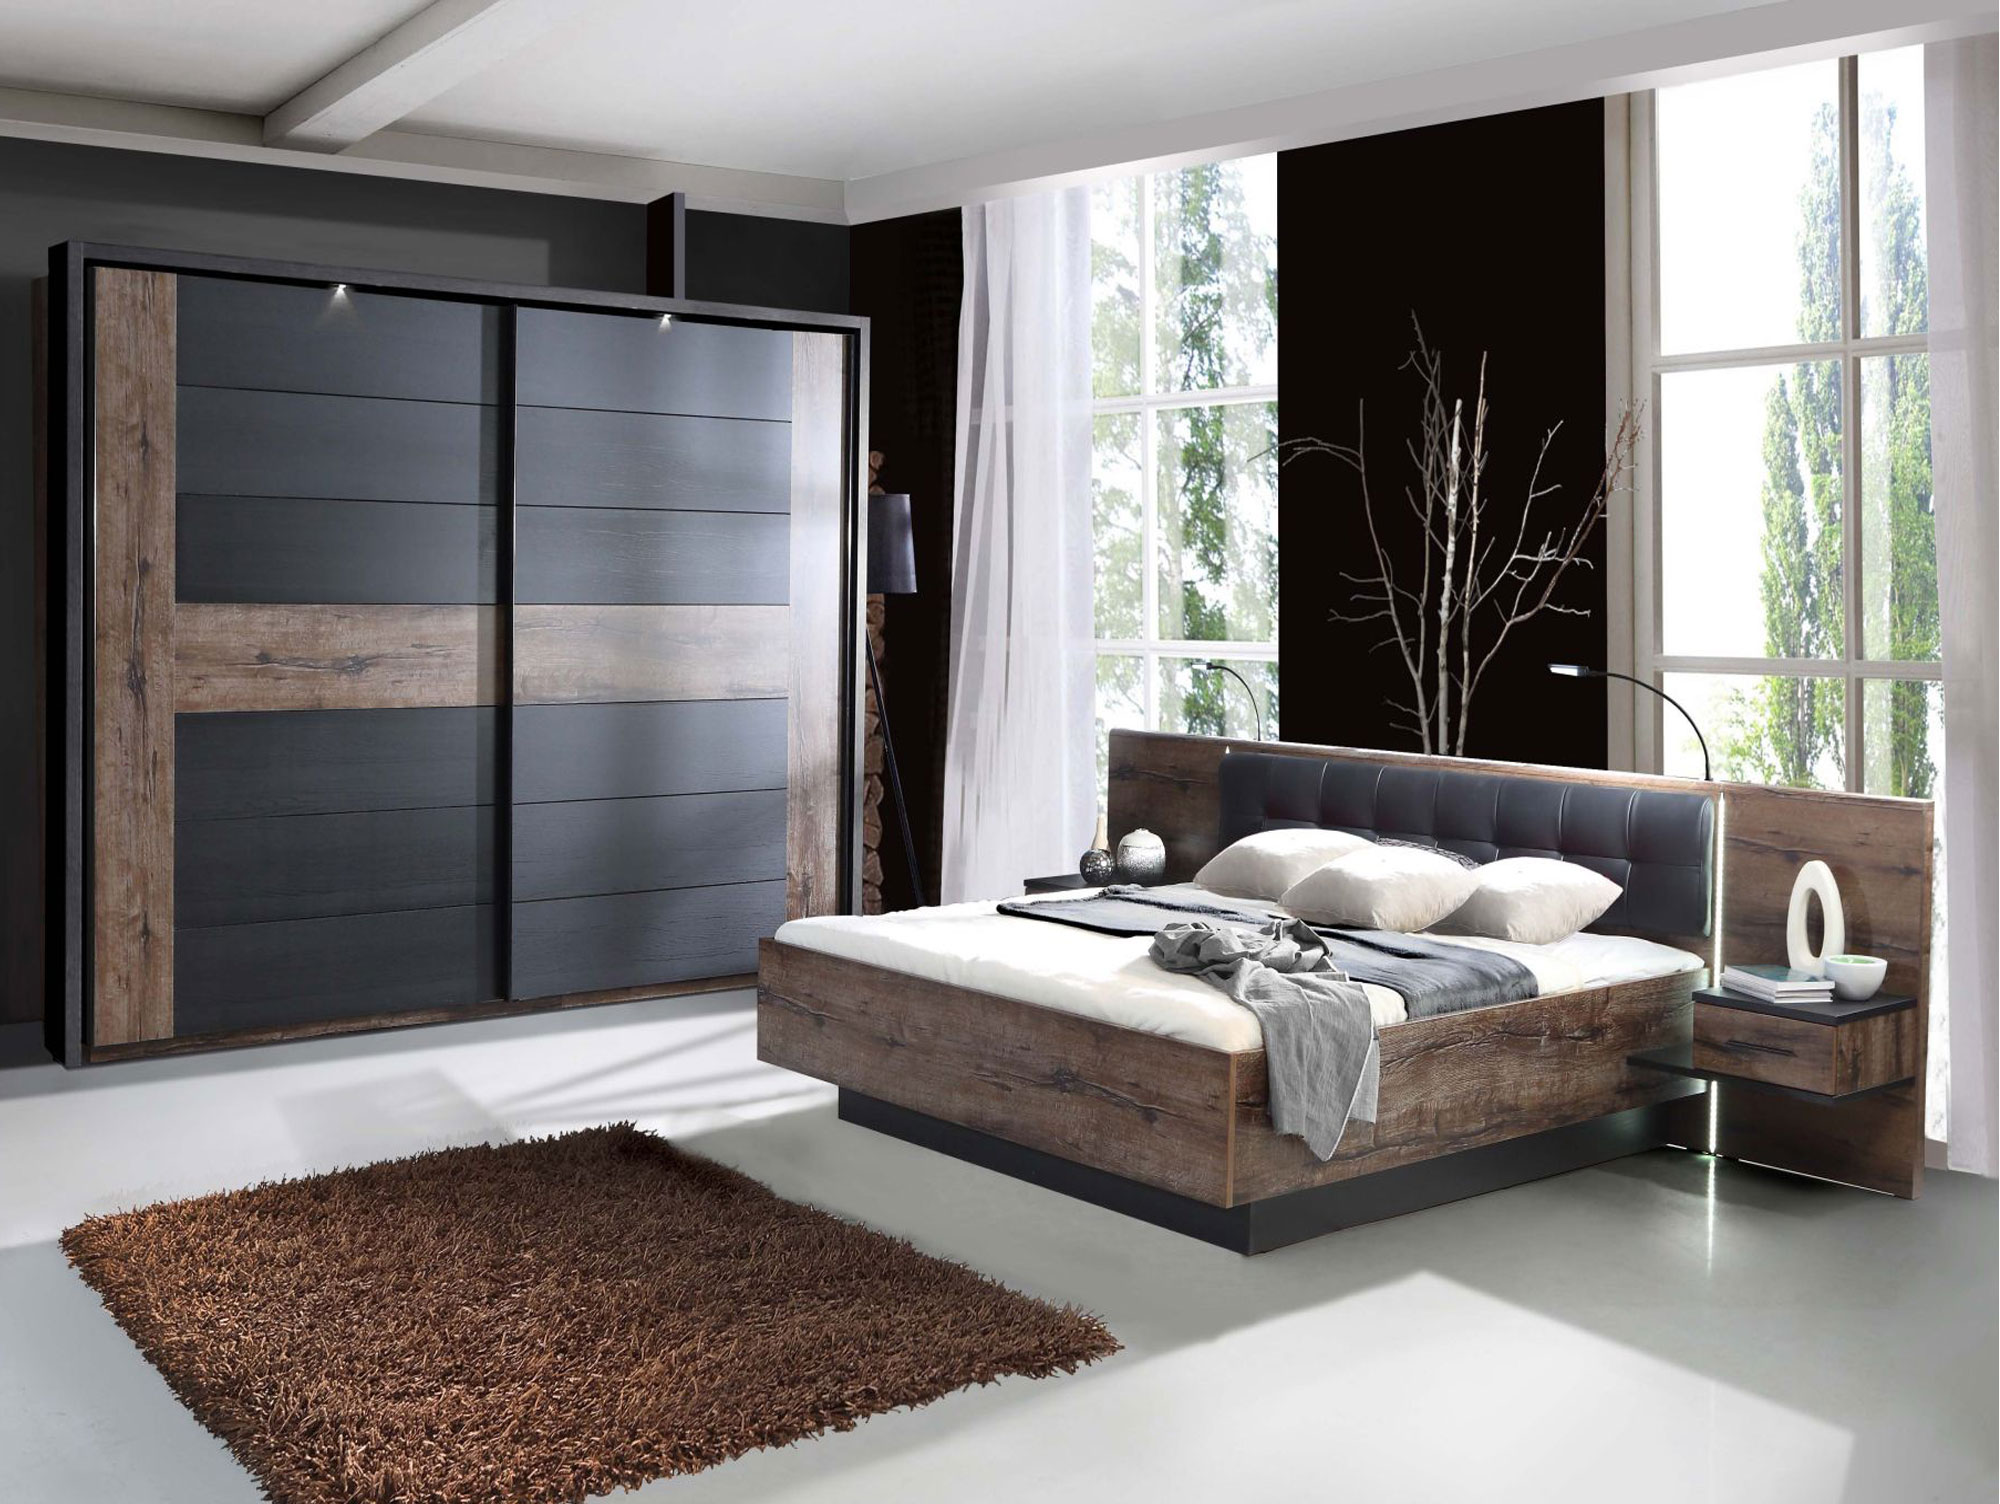 erlin schlafzimmer schwarzeiche dekor 160 x 200 cm schwebet renschrank. Black Bedroom Furniture Sets. Home Design Ideas